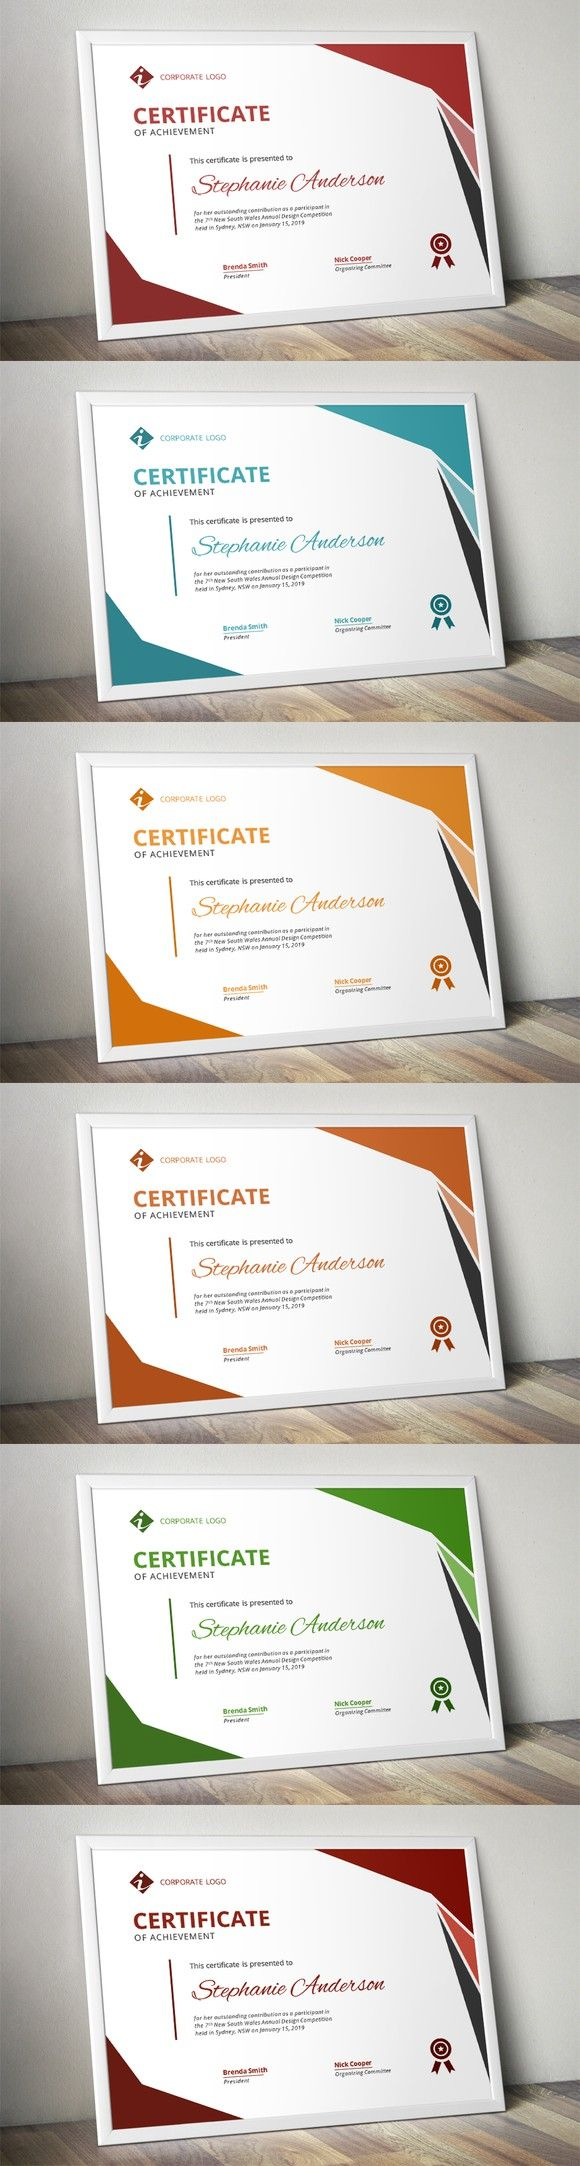 Background Templates For Microsoft Word Unique 7 Best Certificate Design Images On Pinterest